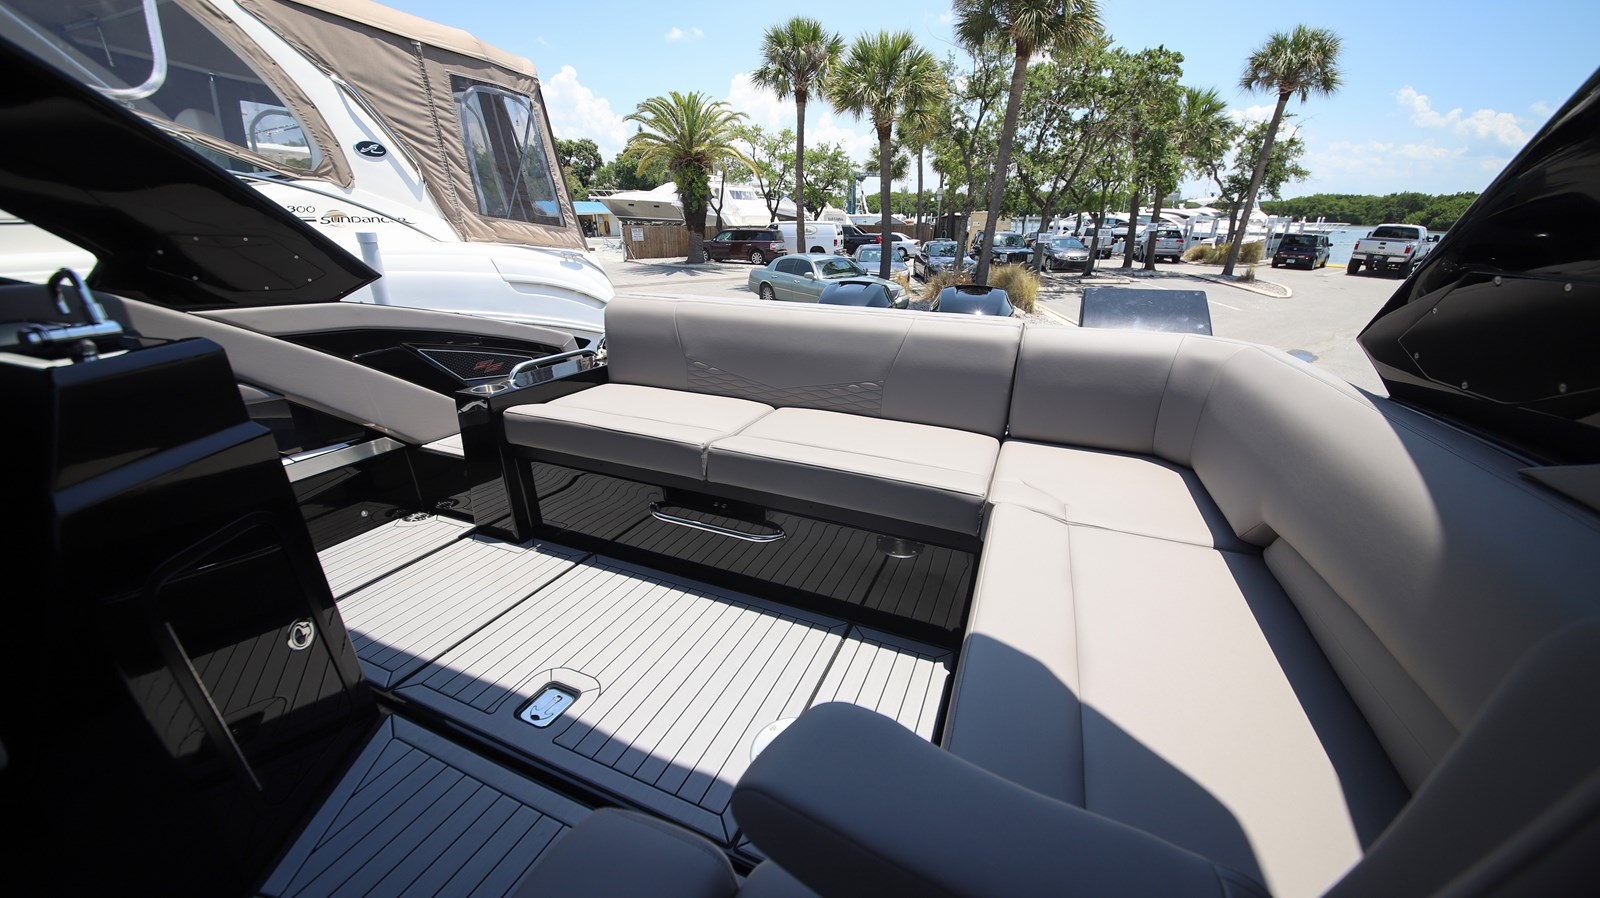 2019 Cruisers 338 2019 Cruisers Yachts 338 South Beach Bowrider Runabout 2541784